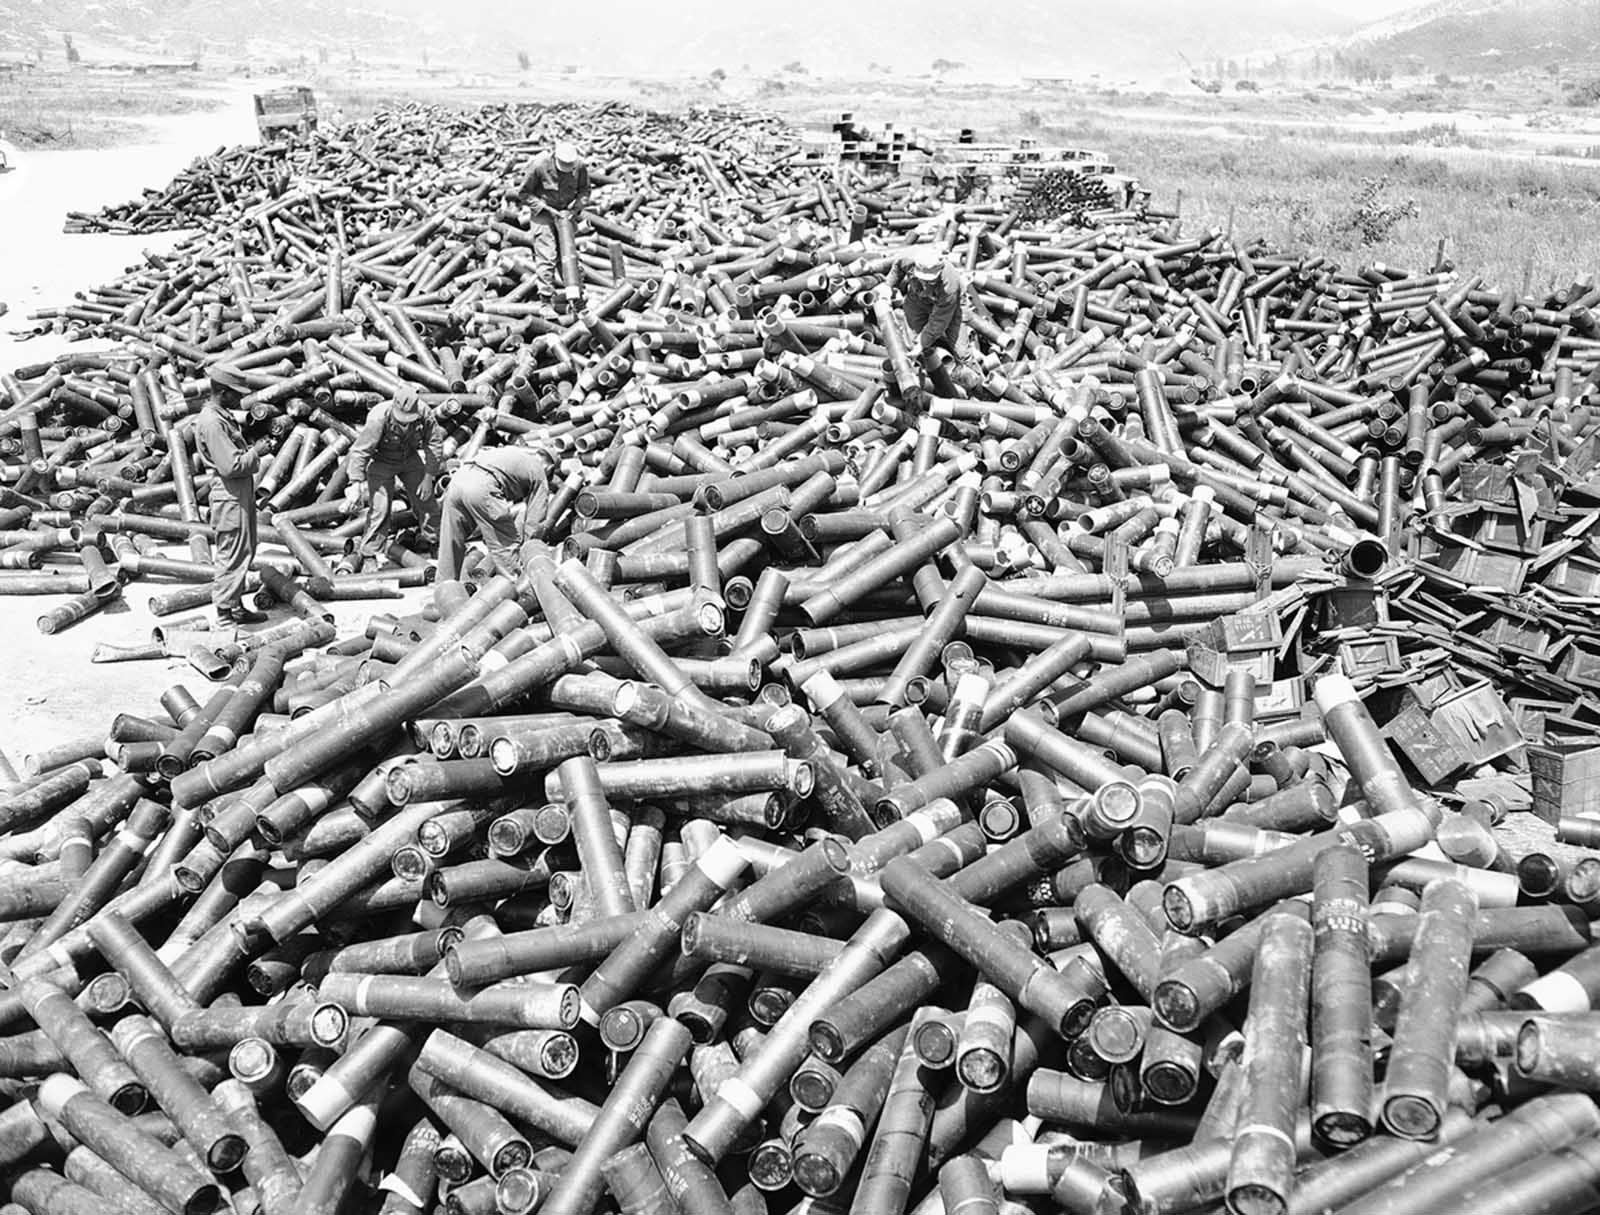 GIs and Korean service corpsmen stack up an enormous pile of empty artillery and mortar shell casings at a collecting point near the front, pointing to the huge amount of lead thrown at the enemy in four days of fighting for outpost Harry, on June 18, 1953.